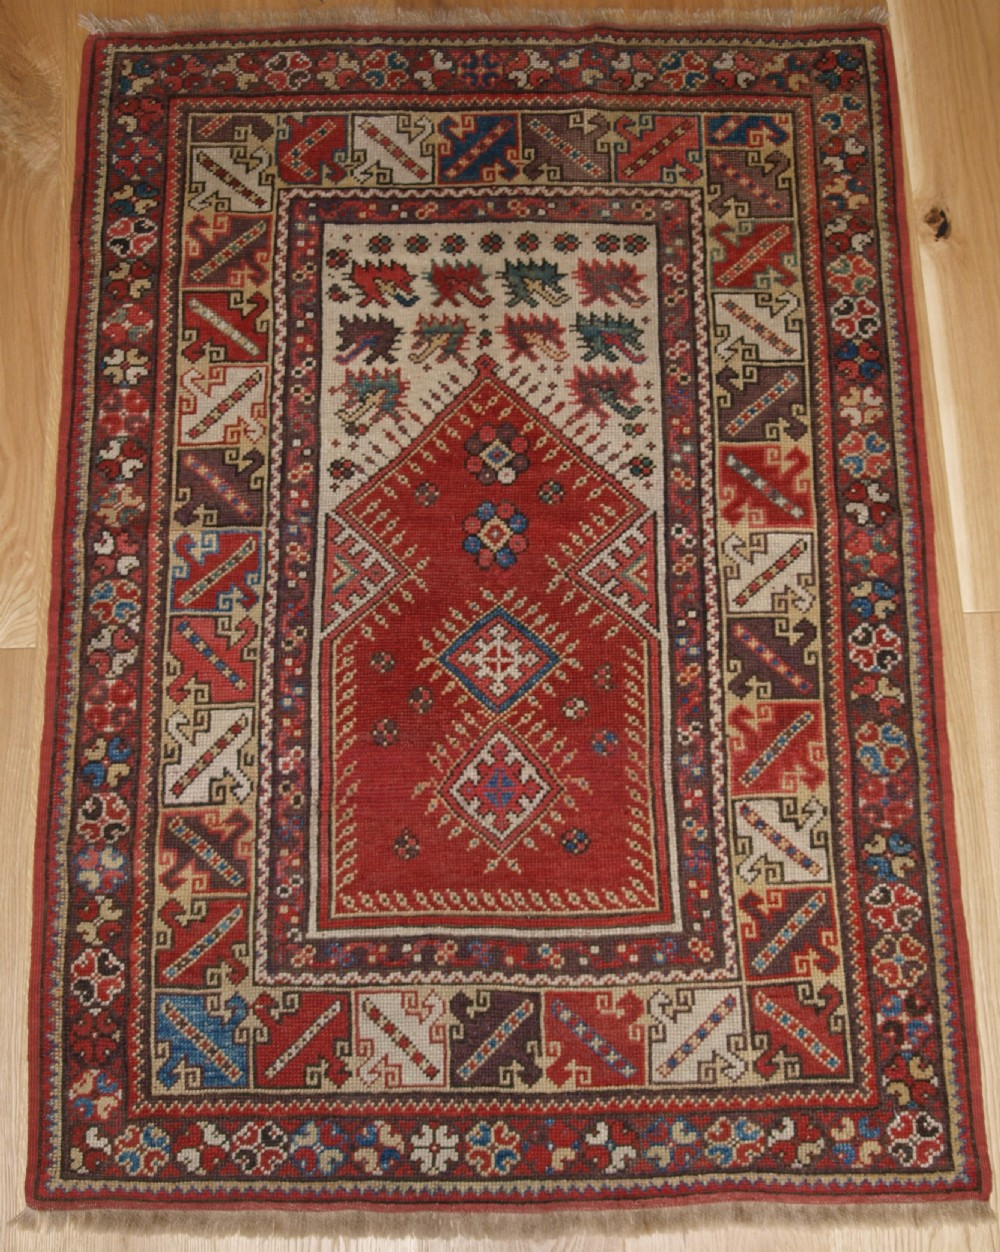 antique turkish milas prayer rug superb small size and design 2nd half 19th century